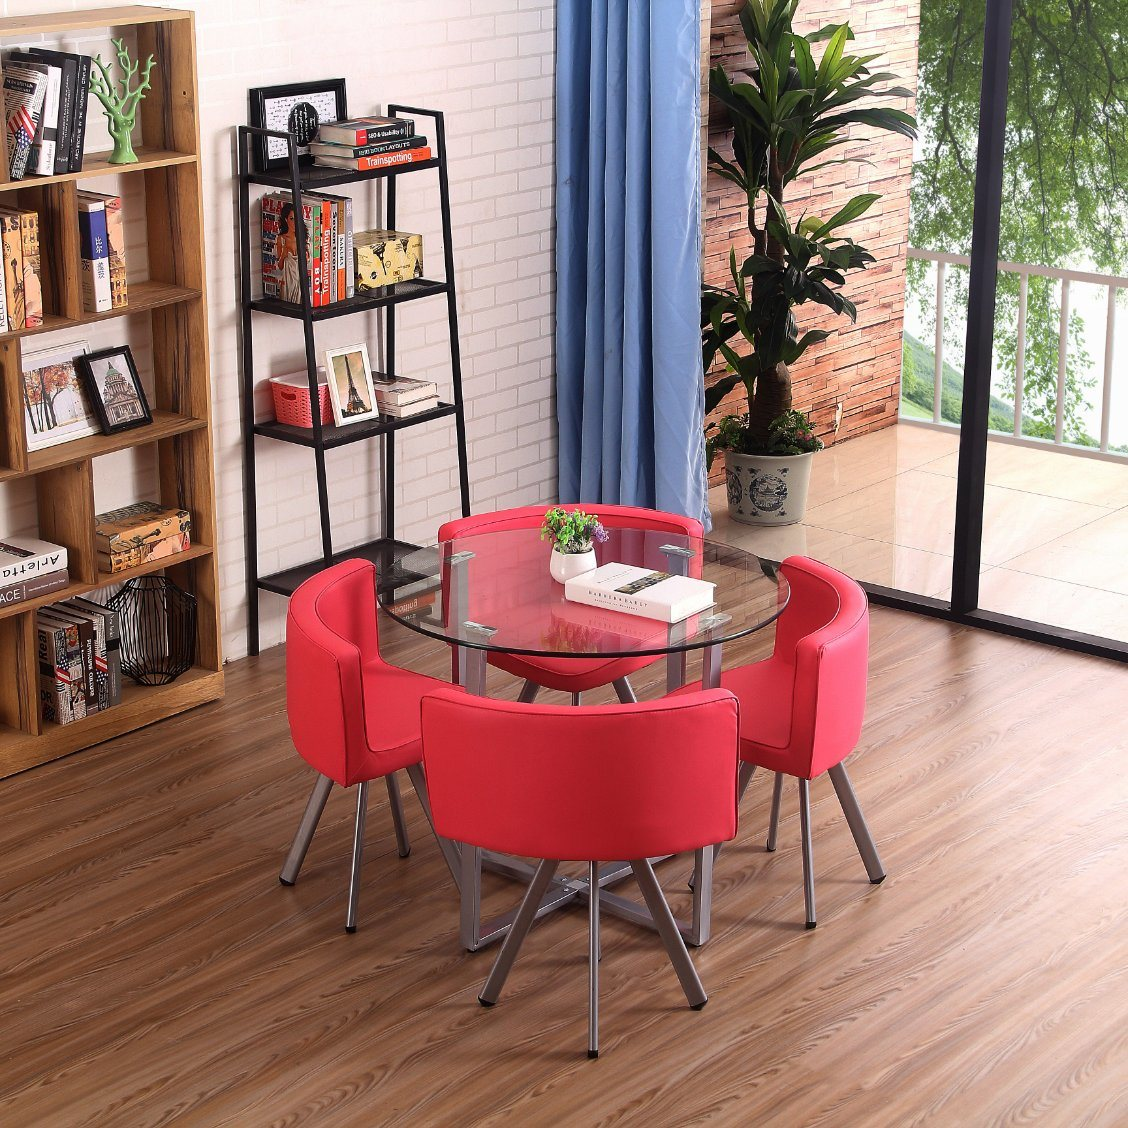 China Hot Sale New Simple Modern Glass Top Table And Chair Sets Model Dining Table Sets With 4 Chairs Pu Or Leather Chair China Dining Table Sets Table And Chair Sets